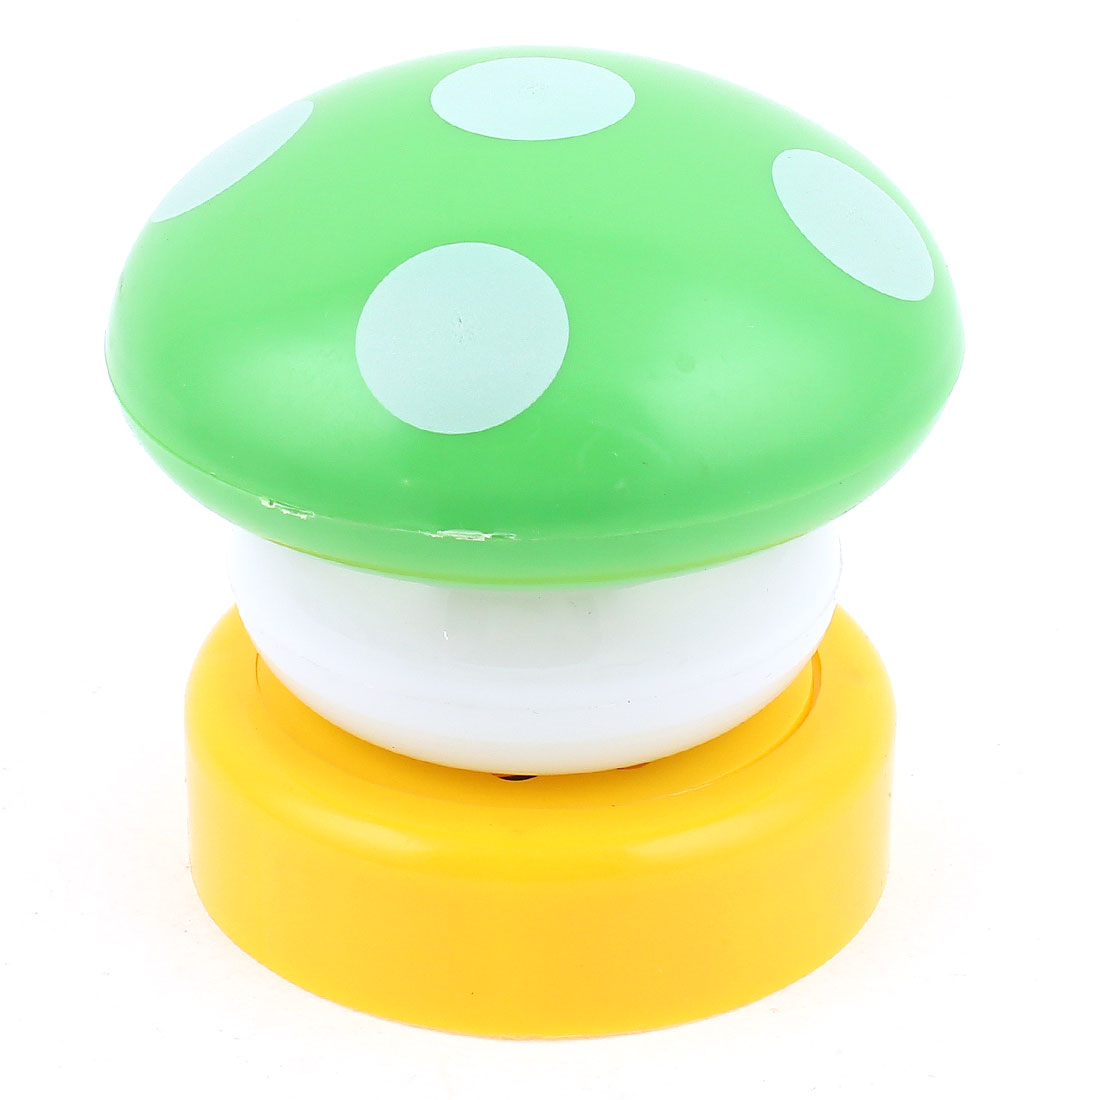 Mushroom Head Press Down Touch LED Lamp Bed Desk Night Light Green